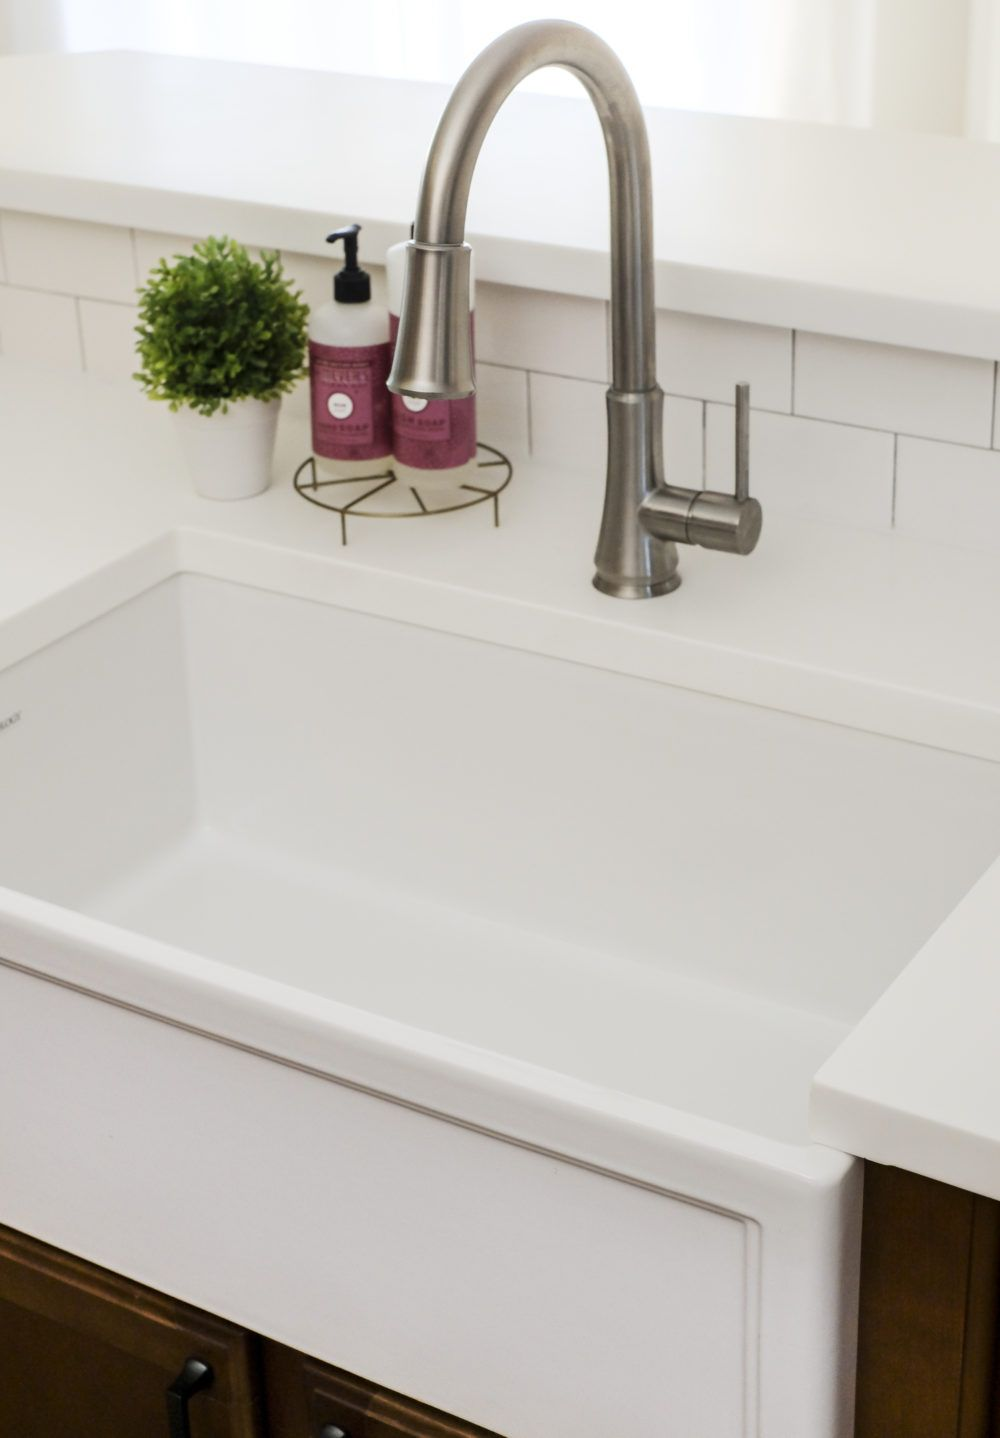 Fireclay Farmhouse Sink Review | Kitchen Obsessed | Pinterest ...